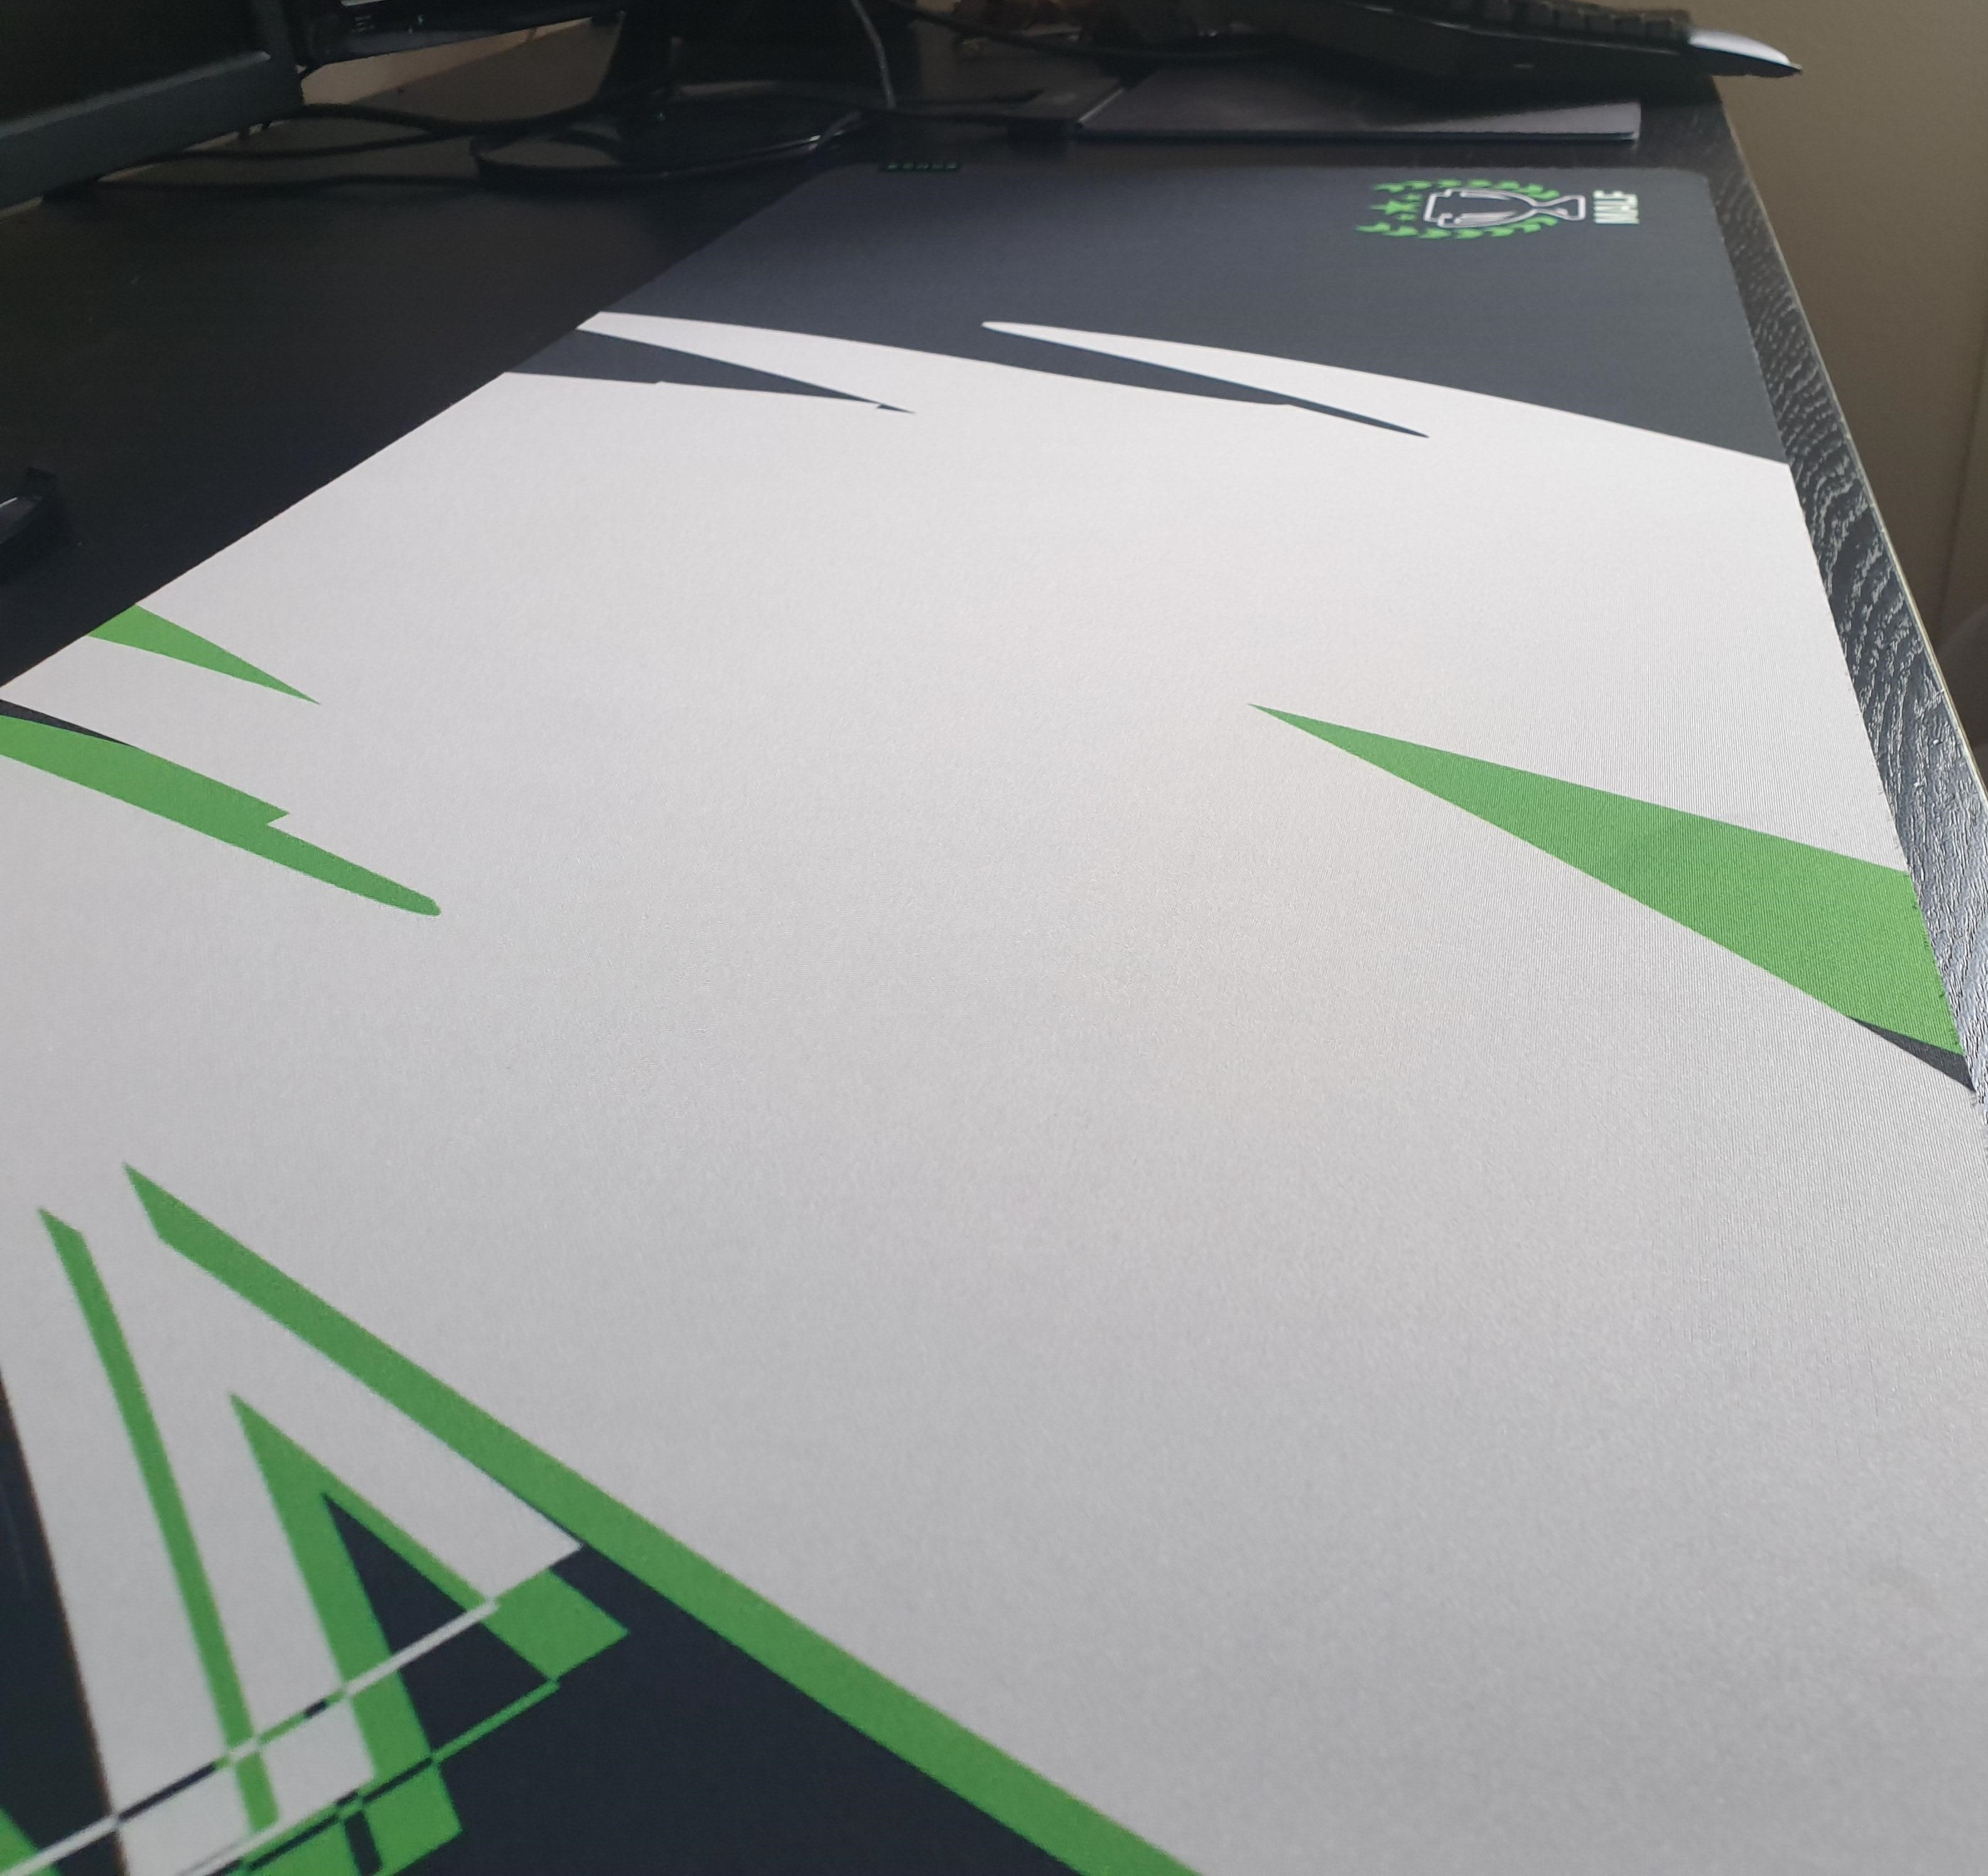 Razer Customs Review – Create Your Own Customized Razer Mouse Pad